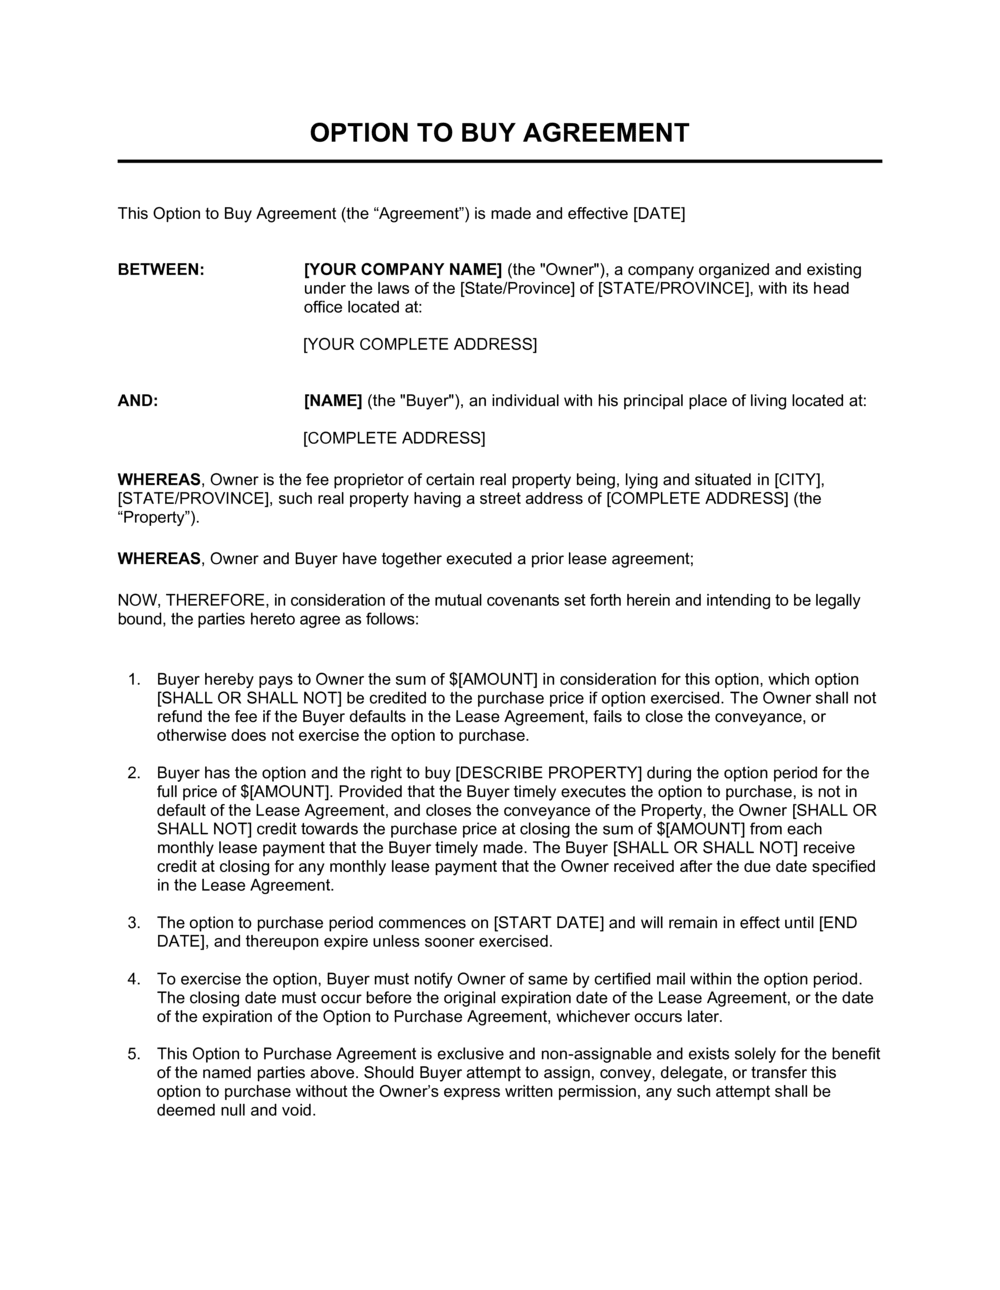 Business-in-a-Box's Option to Buy Agreement Long Template